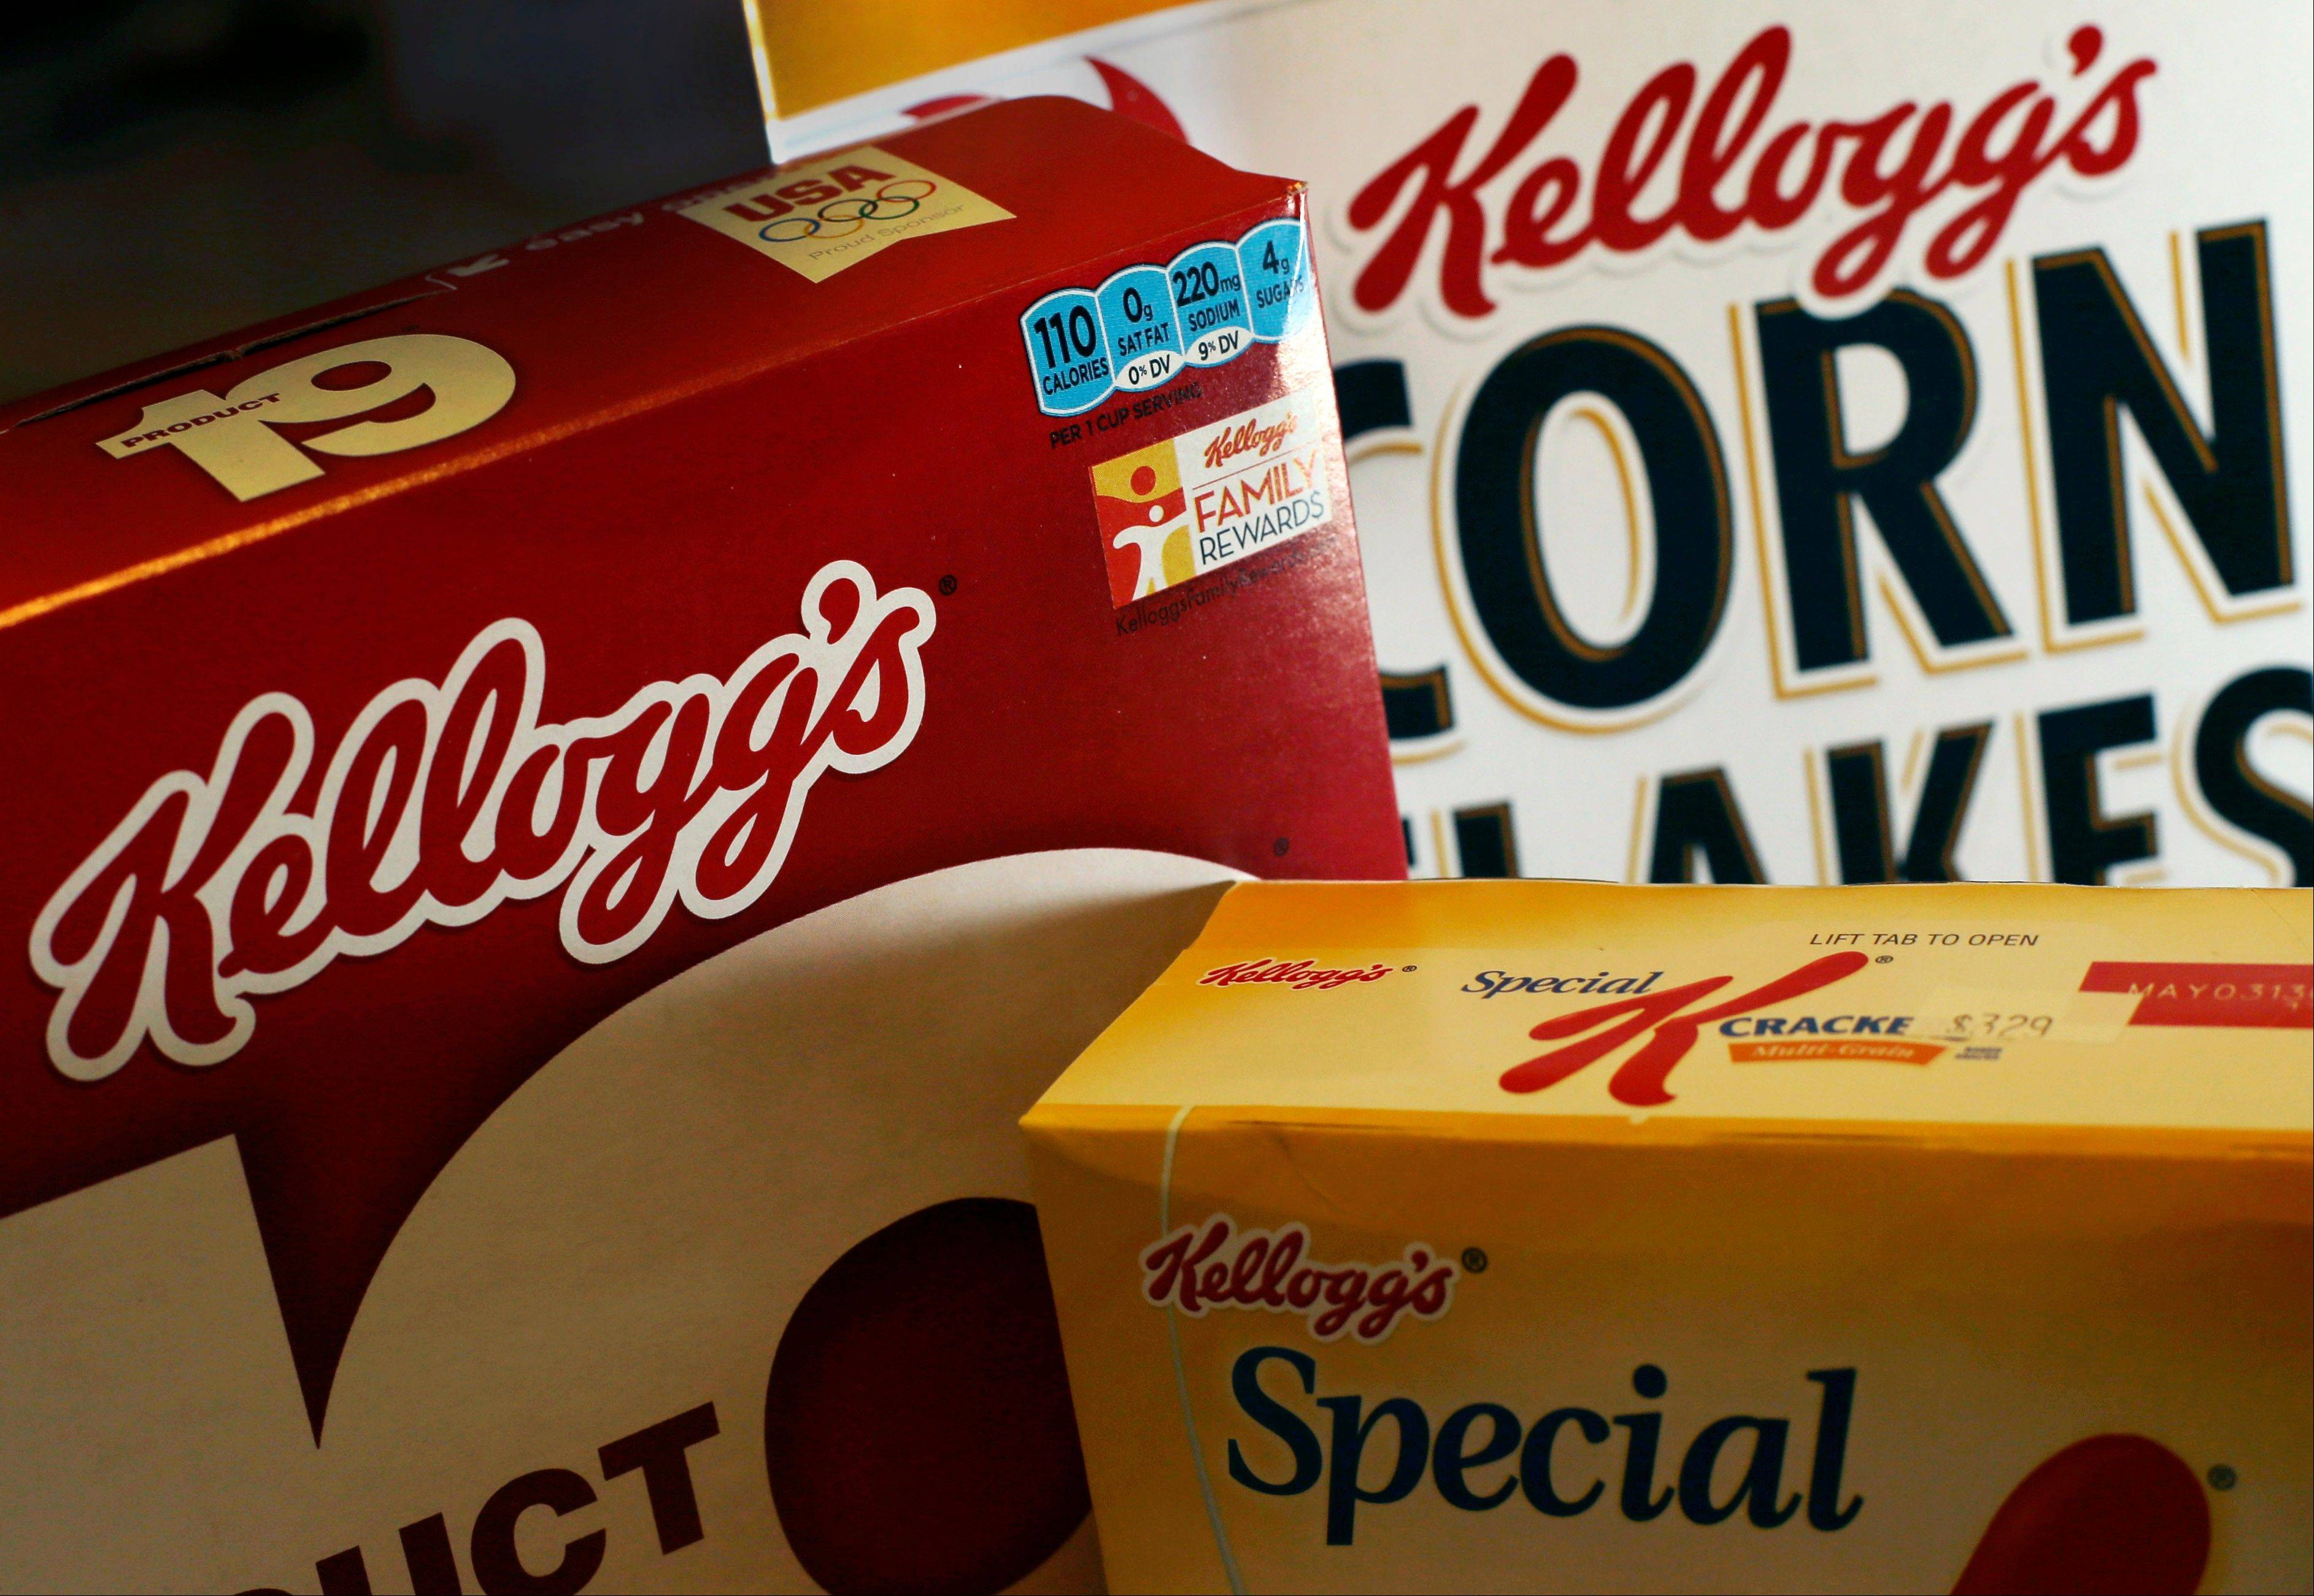 Kellogg's appetite for salty snacks is helping fatten its profits. The world's biggest cereal maker, best known for its Frosted Flakes, Pop-Tarts and Eggo waffles, says its recent acquisition of Pringles chips boosted its net income in the third quarter. Kellogg, based in Battle Creek, Mich., bought the brand earlier this year in hopes of becoming a global player in the salty snacks market.